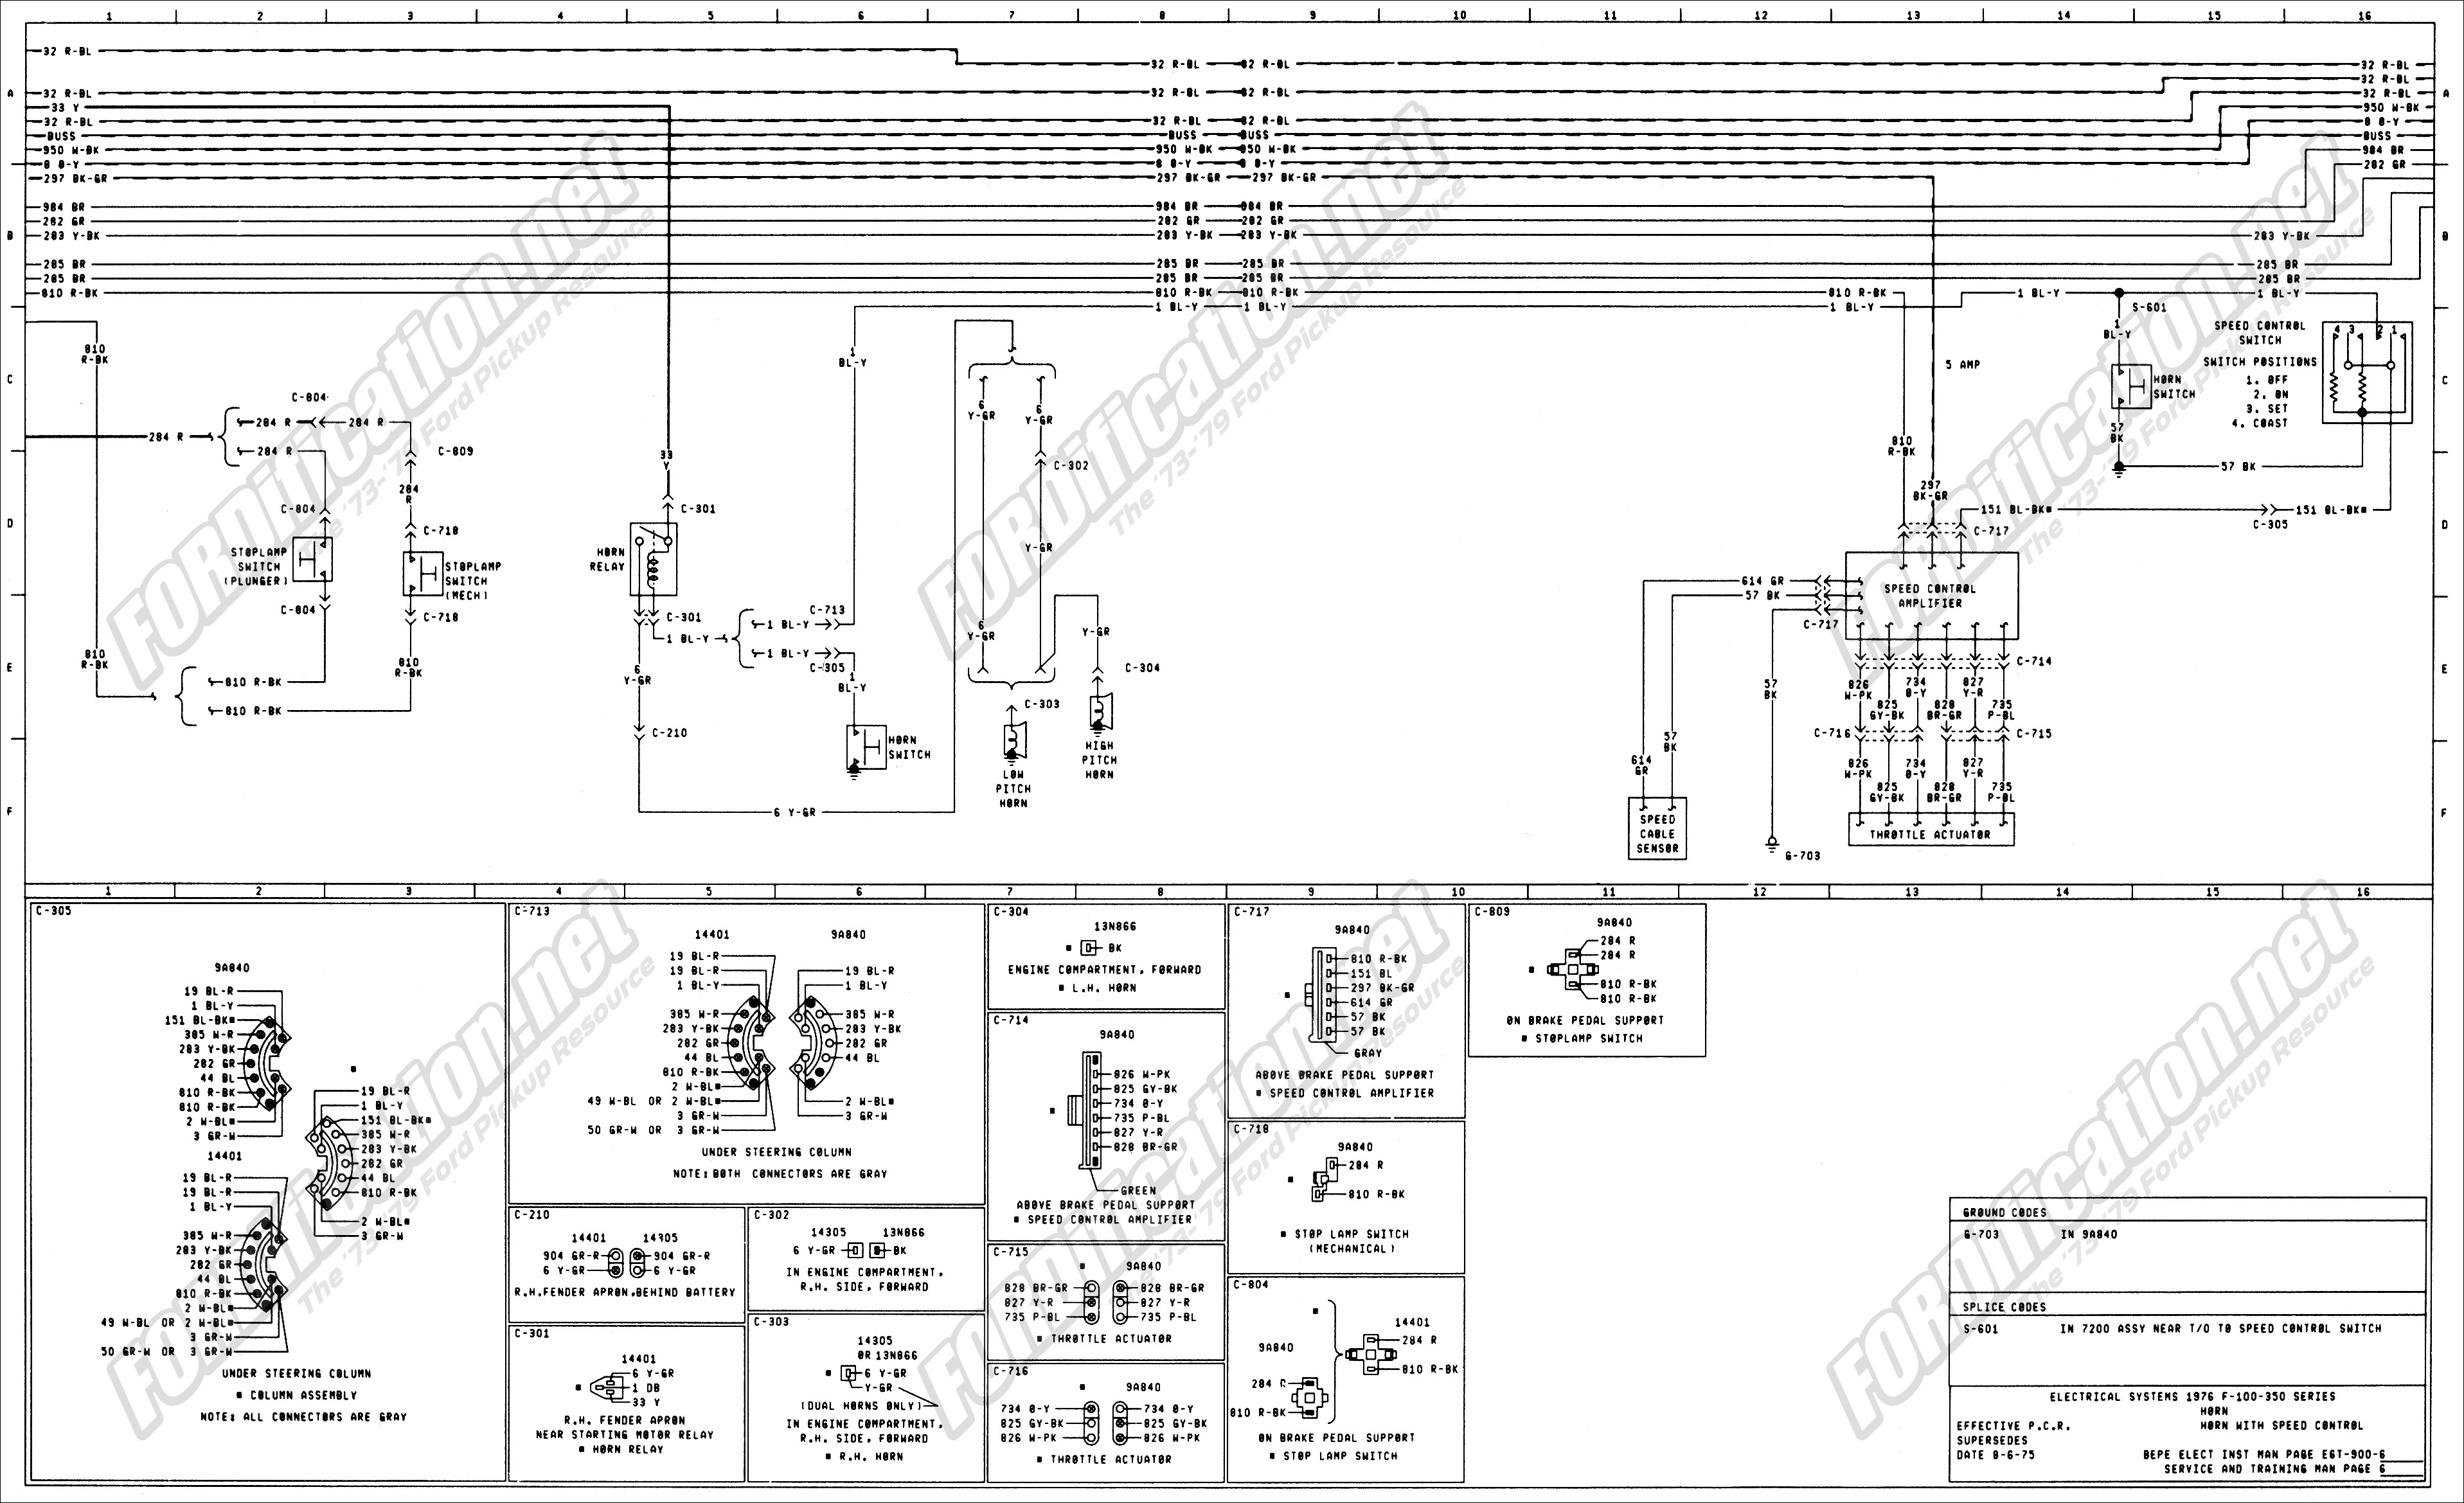 Tail Light Wiring Diagram ford F150 1973 1979 ford Truck Wiring Diagrams & Schematics fordification Of Tail Light Wiring Diagram ford F150